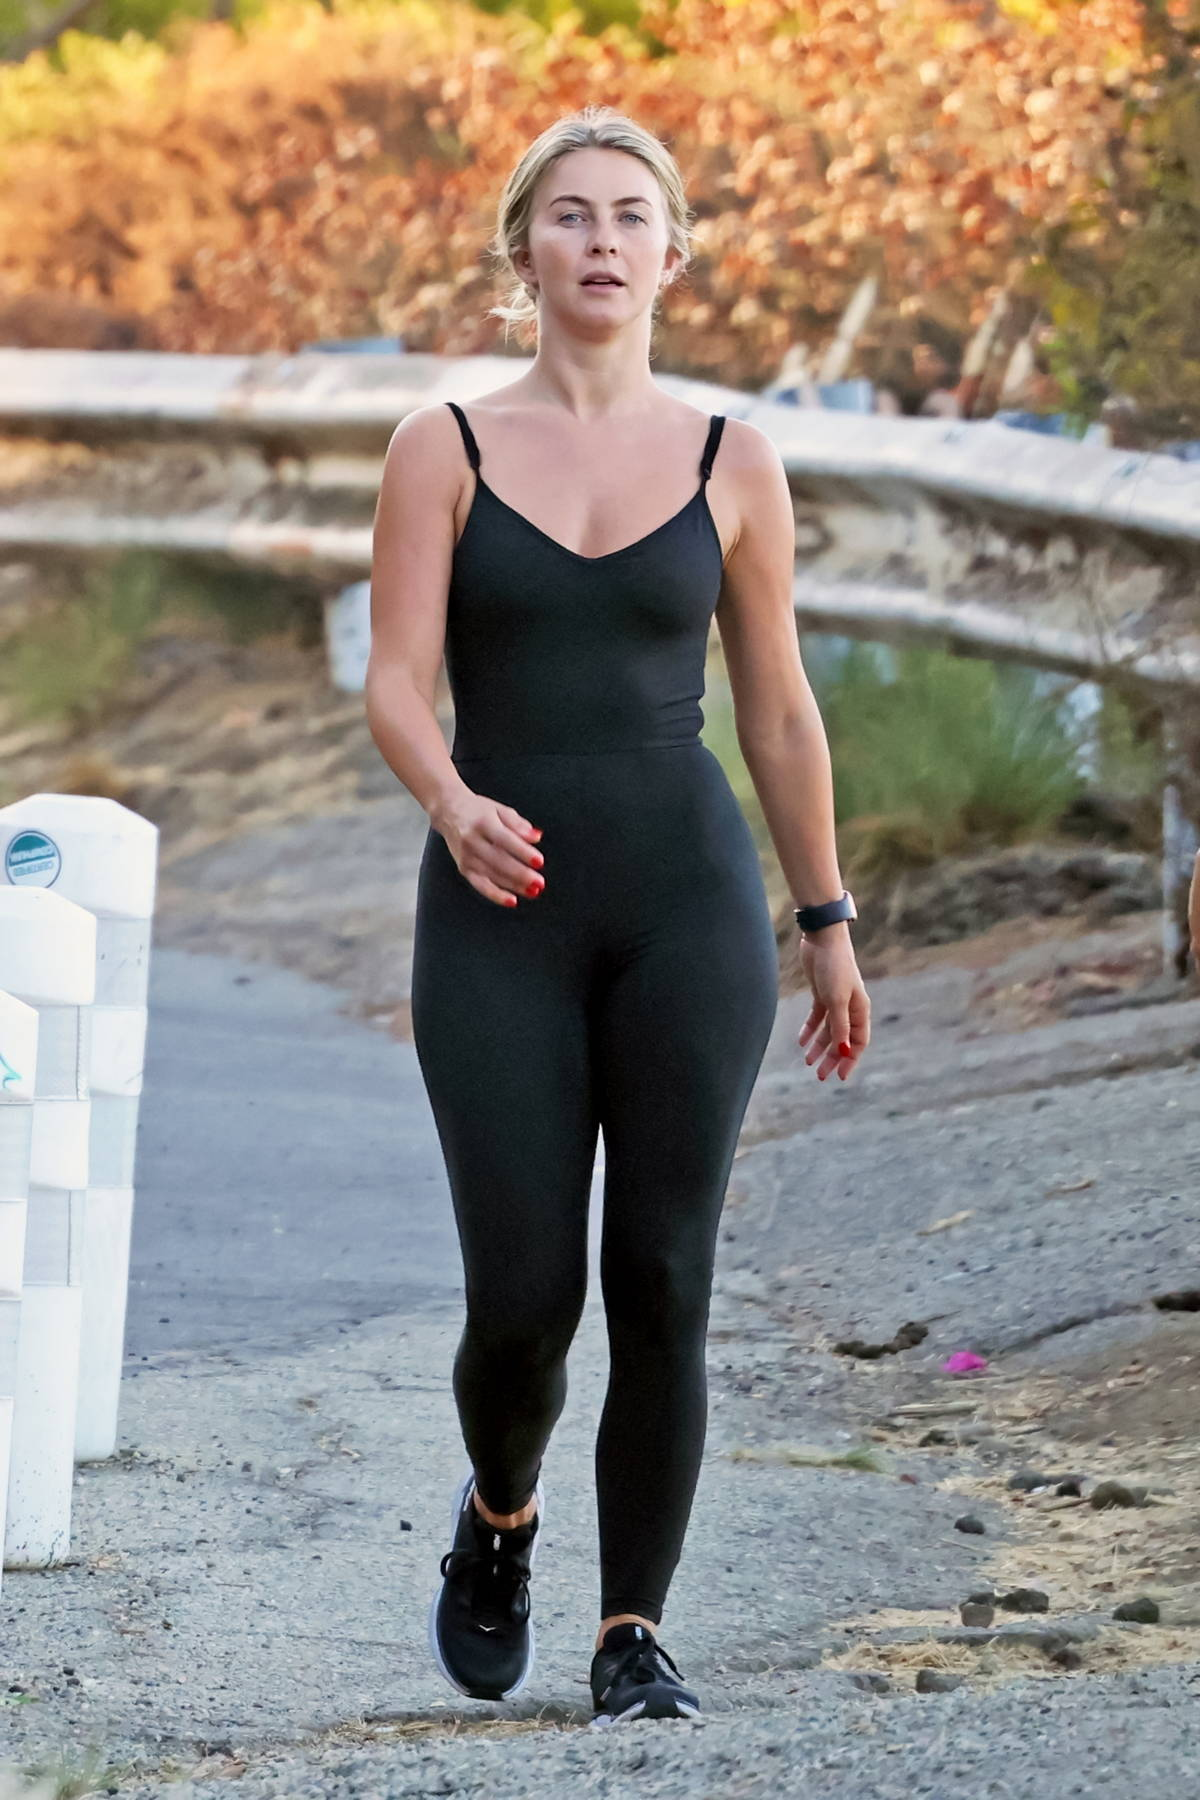 Julianne Hough sports a black top and leggings for an early morning hike with a friend in Los Angeles